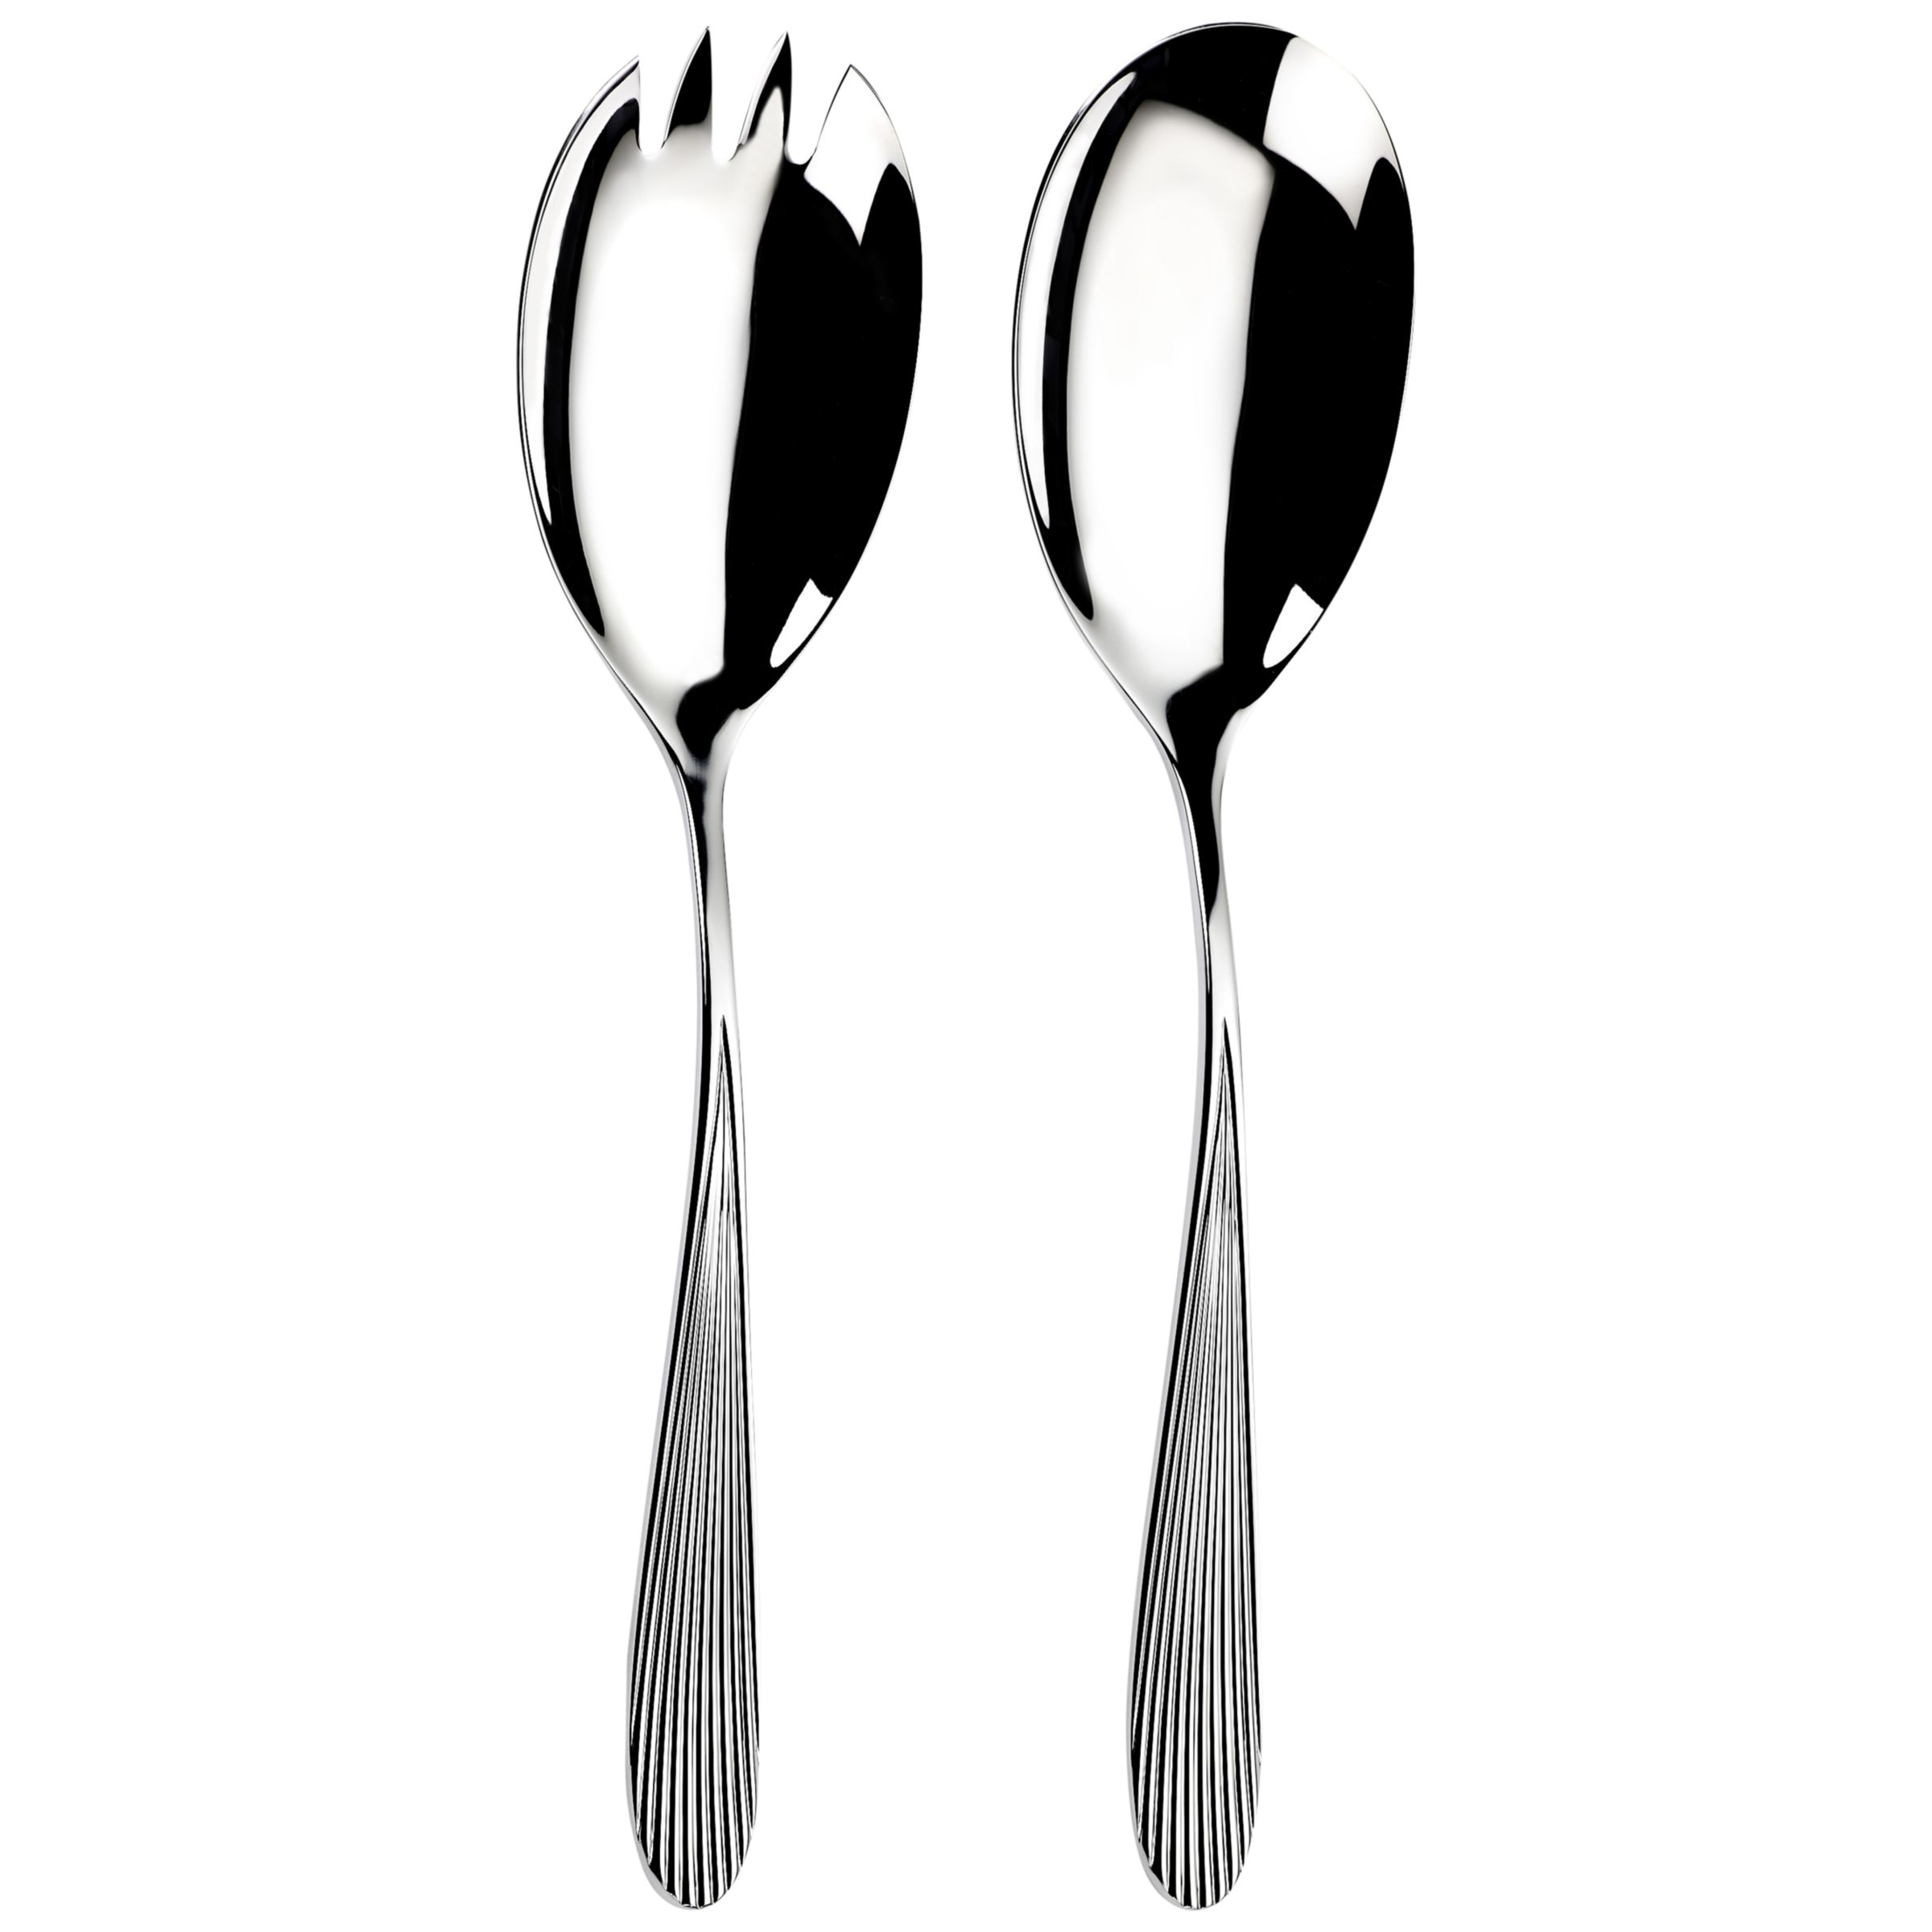 Sophie Conran for Arthur Price Sophie Conran for Arthur Price Dune Salad Servers